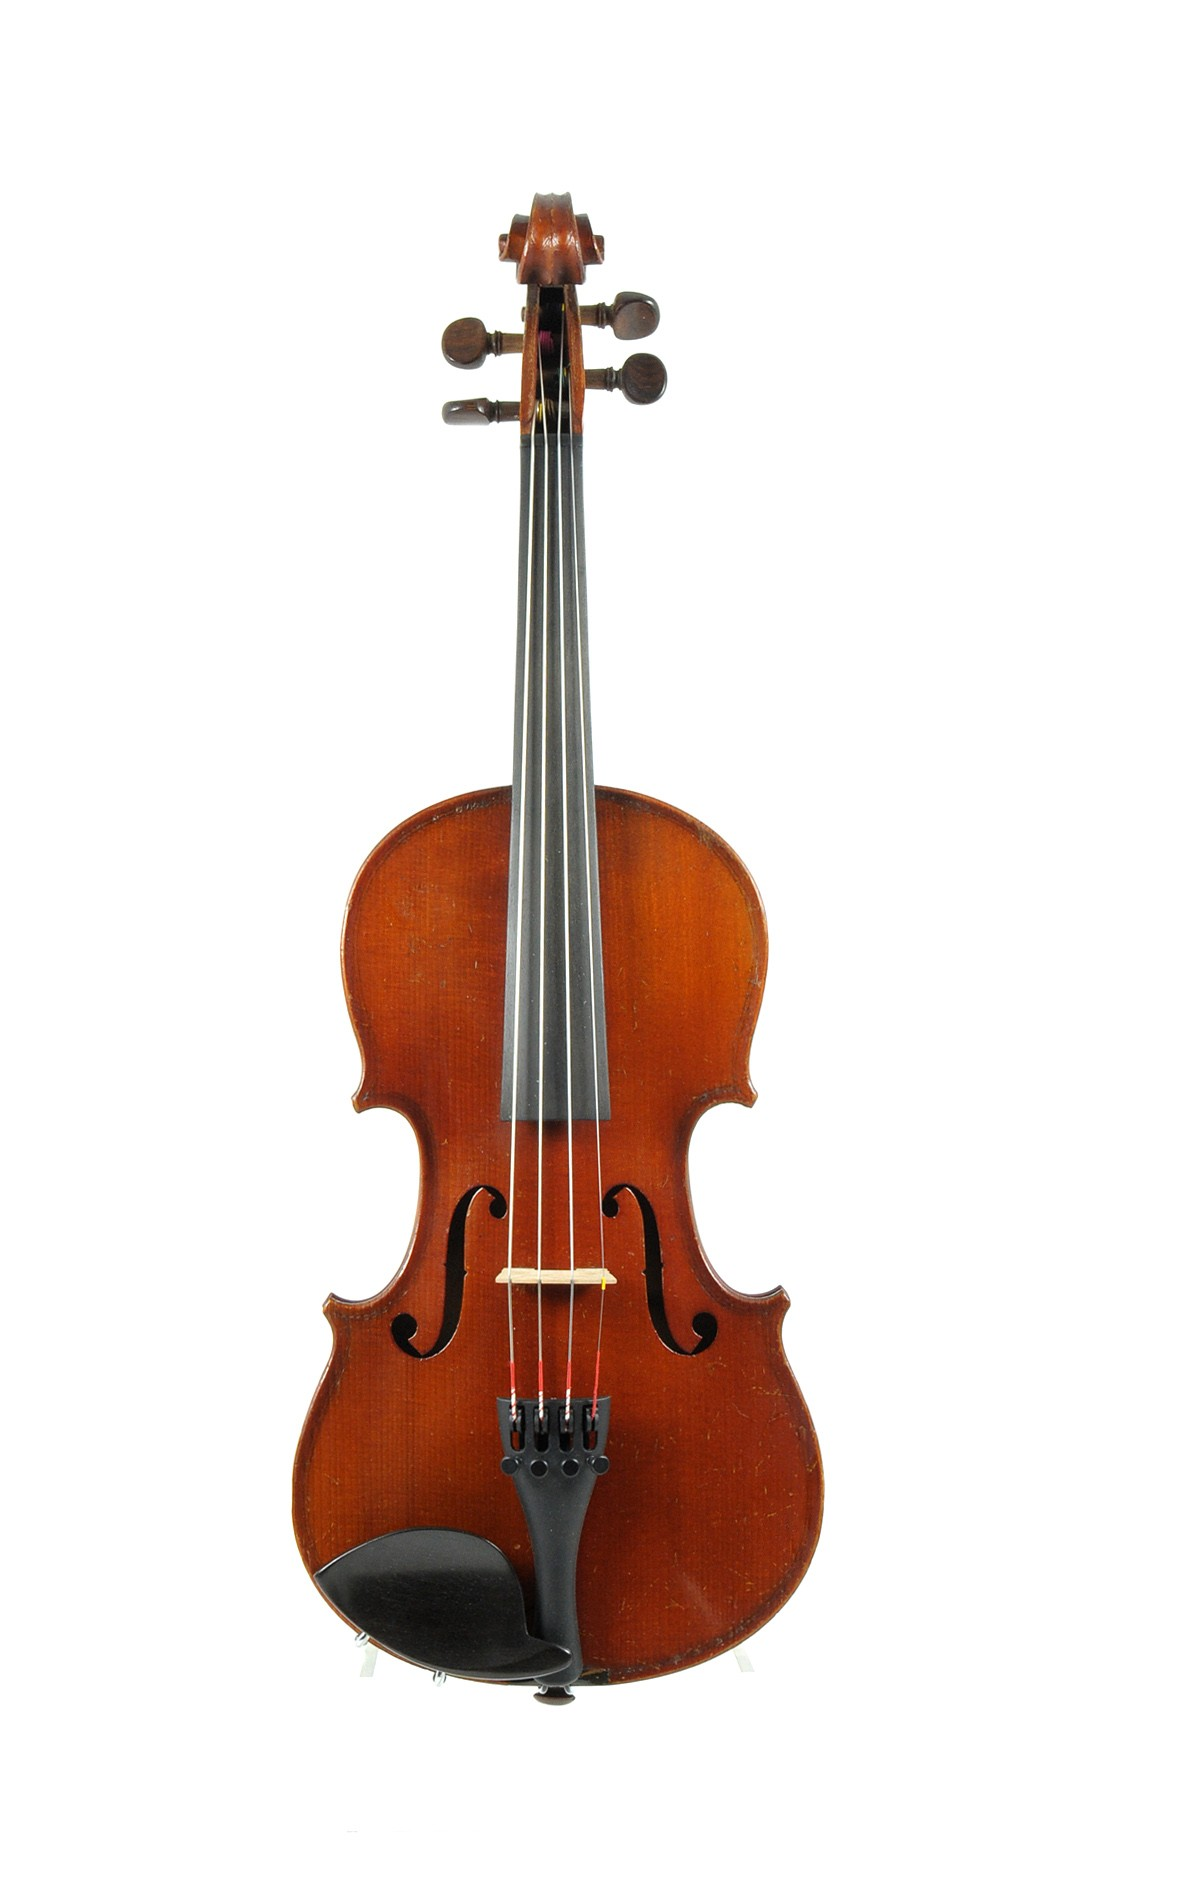 Old 1/2 Violin with a wide neck, France, around 1880